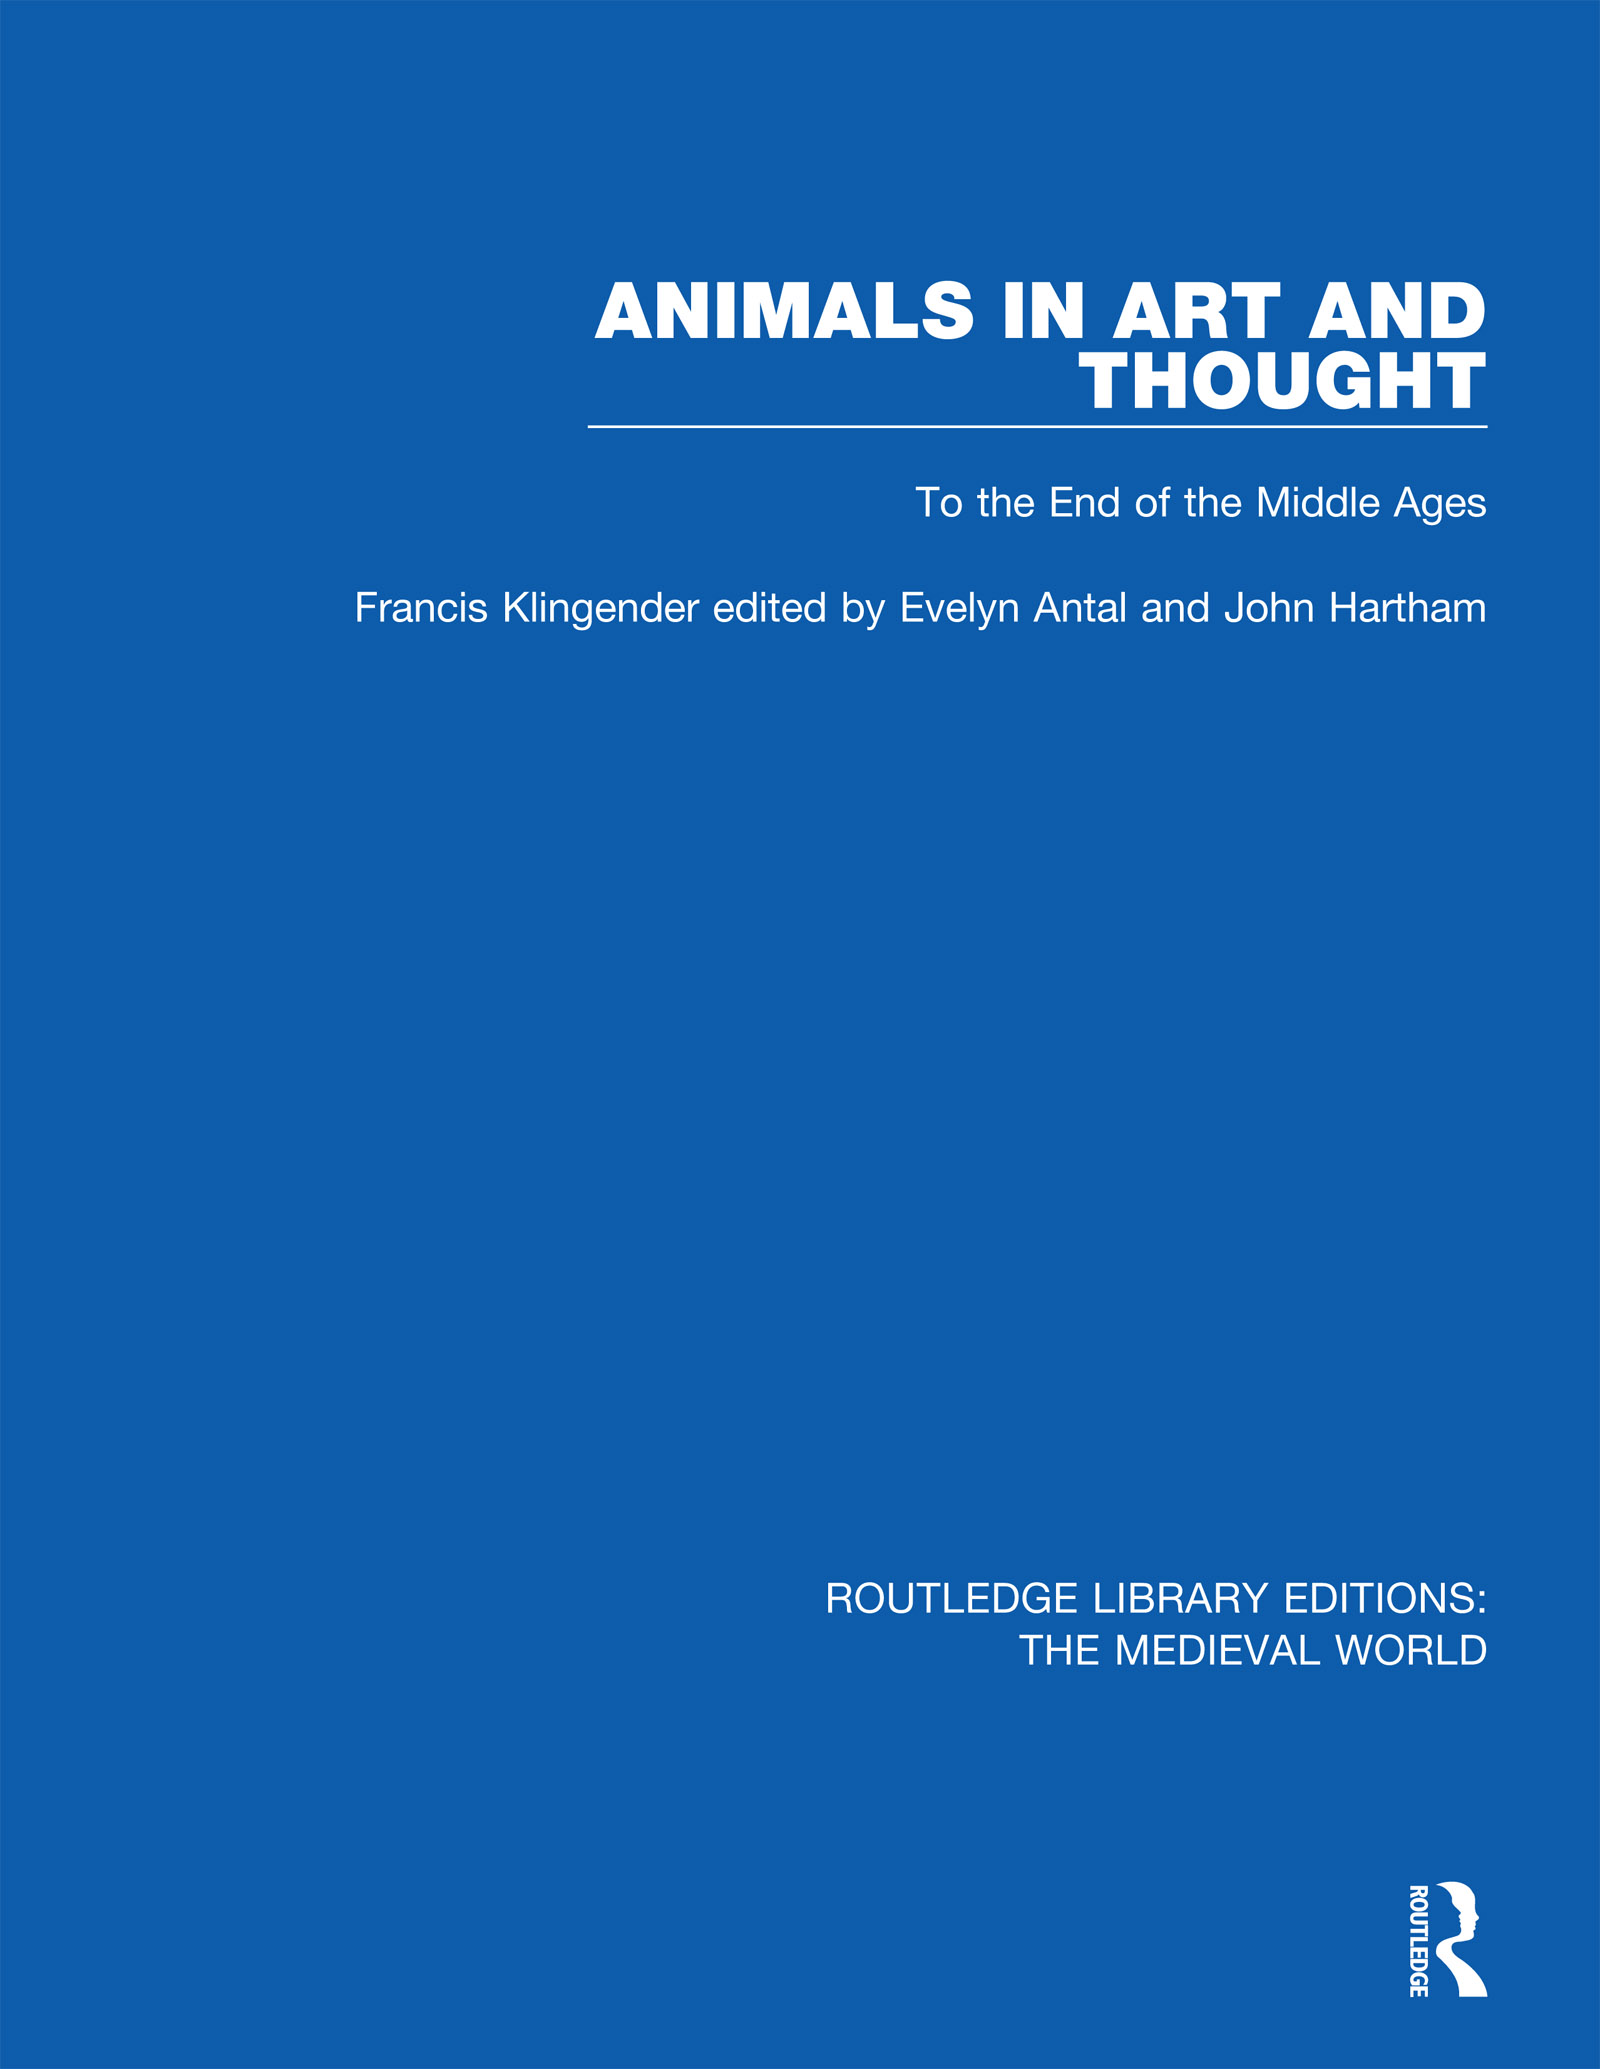 Animals in Art and Thought